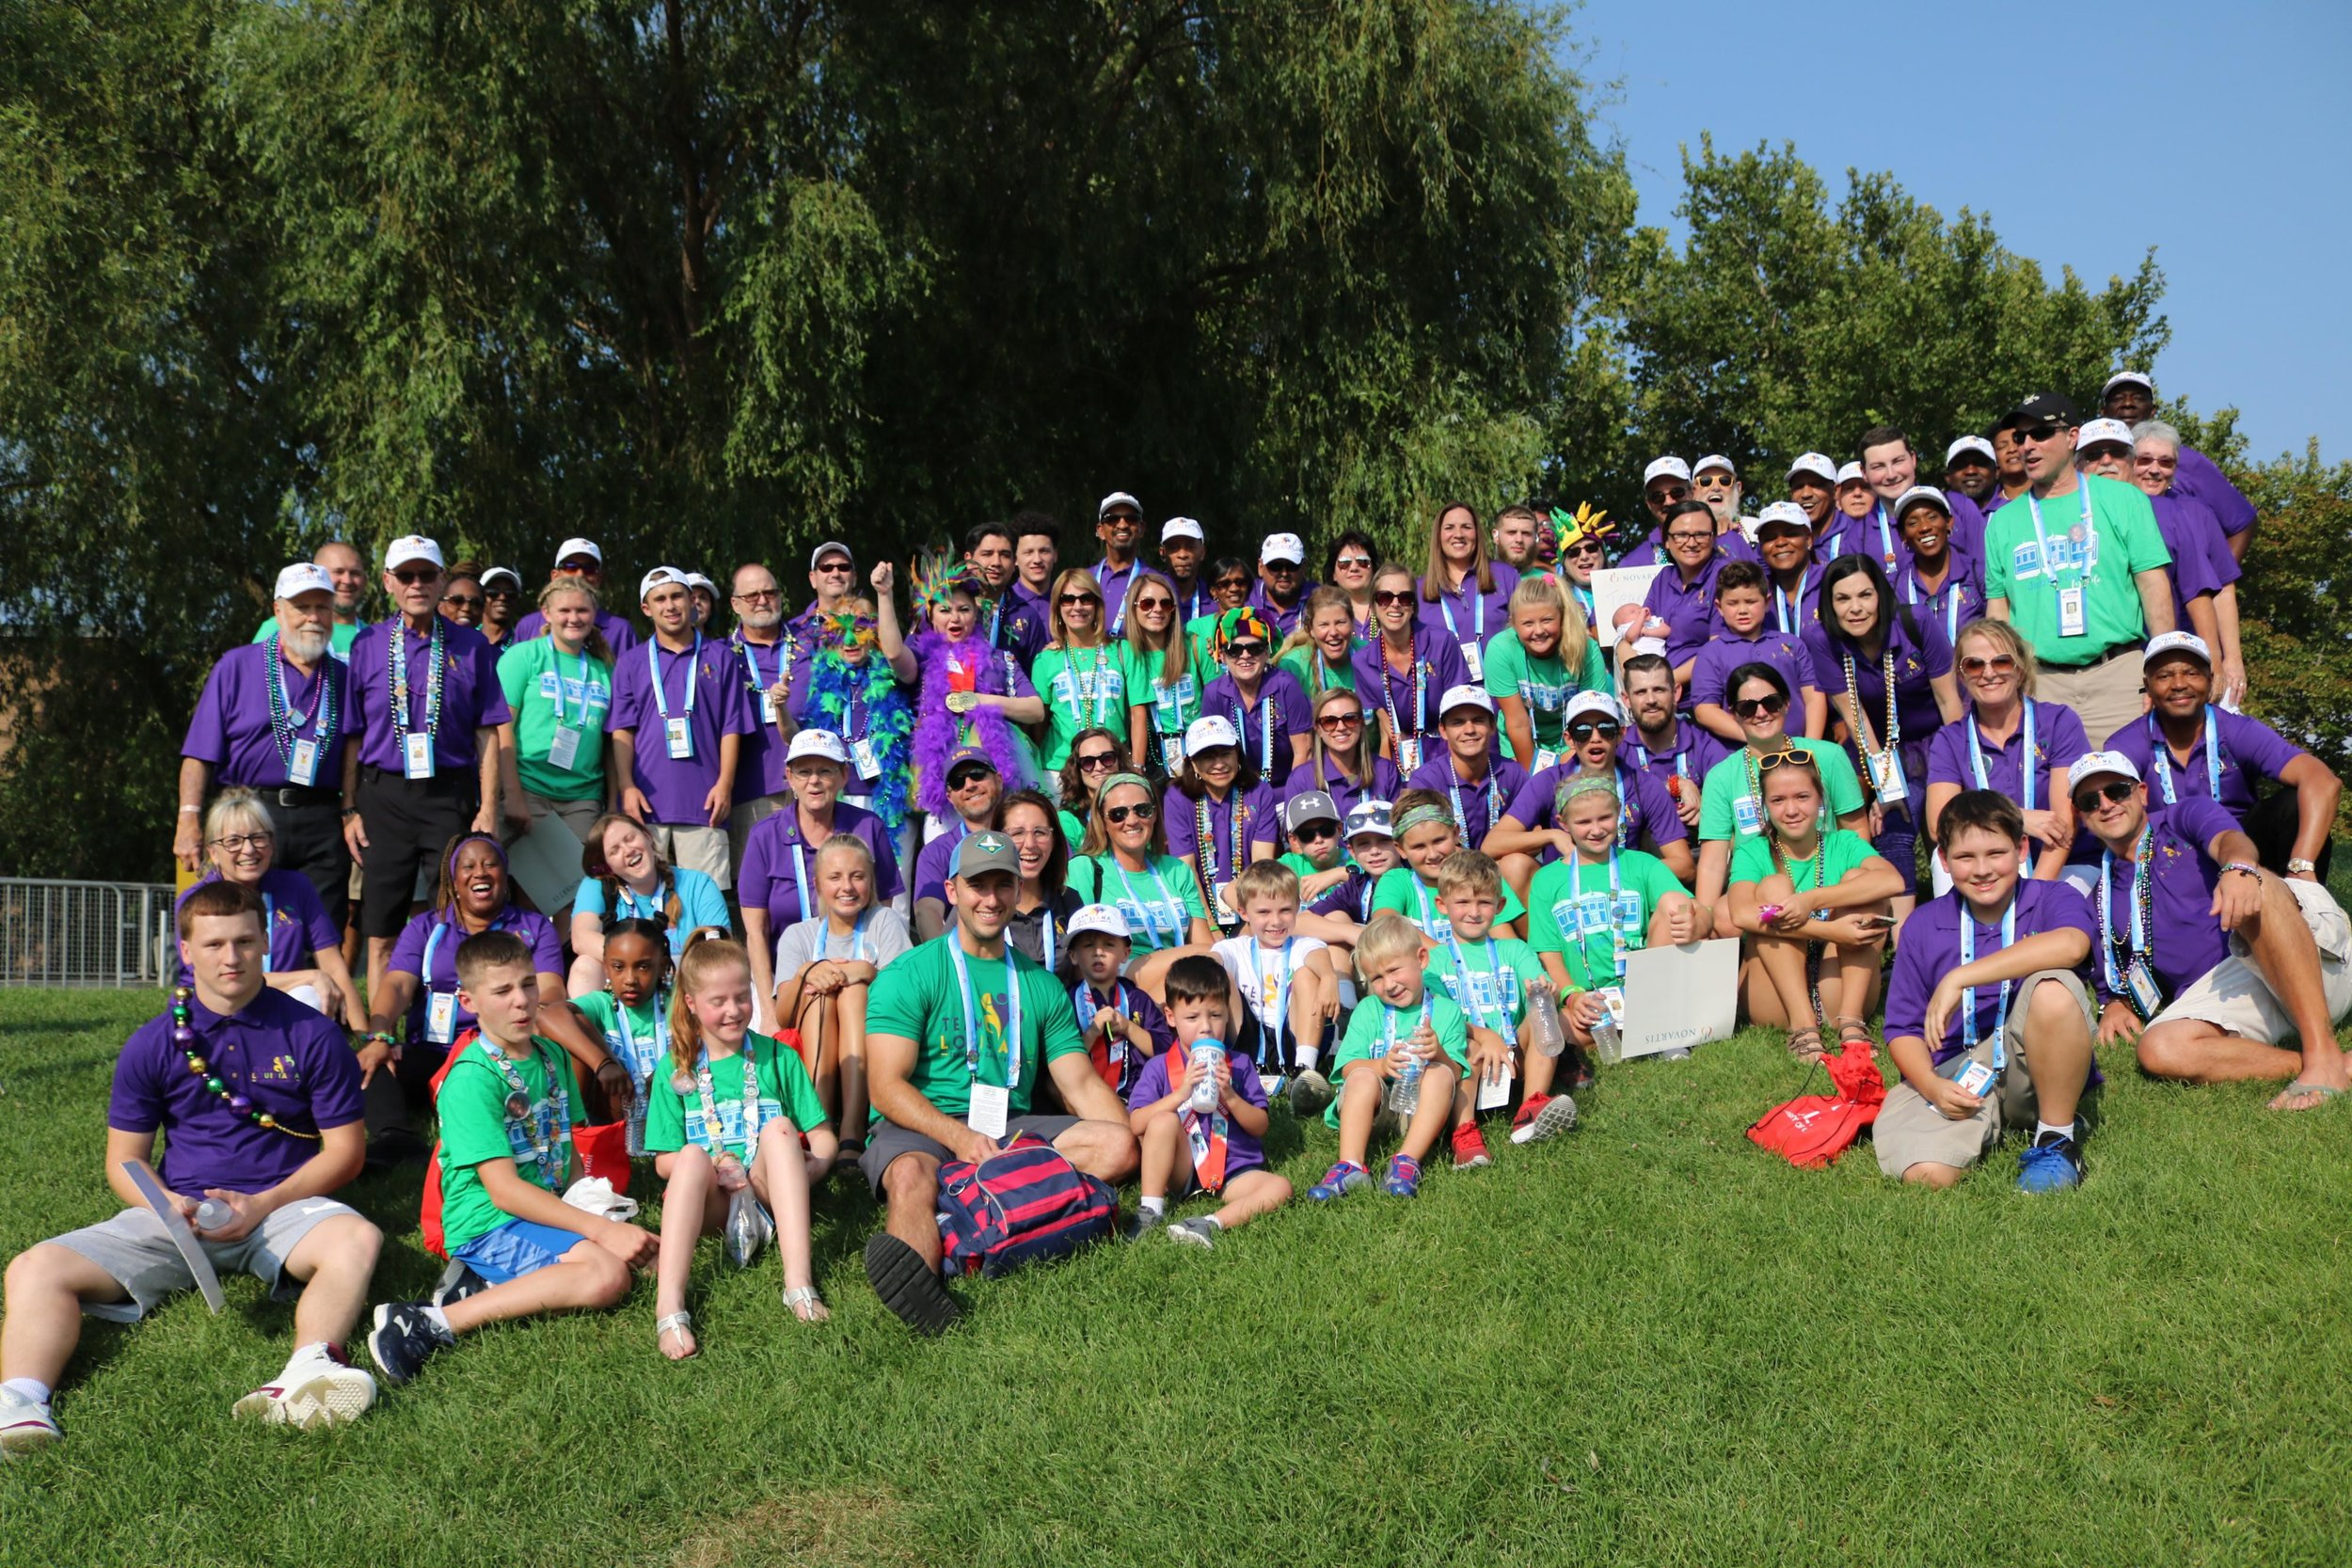 Click on the picture or here for a link to the entire TGA photo album.    The album will be updated with all the pictures captured at the 2018 Transplant Games soon. If you don't see the picture you are looking for, check back often!